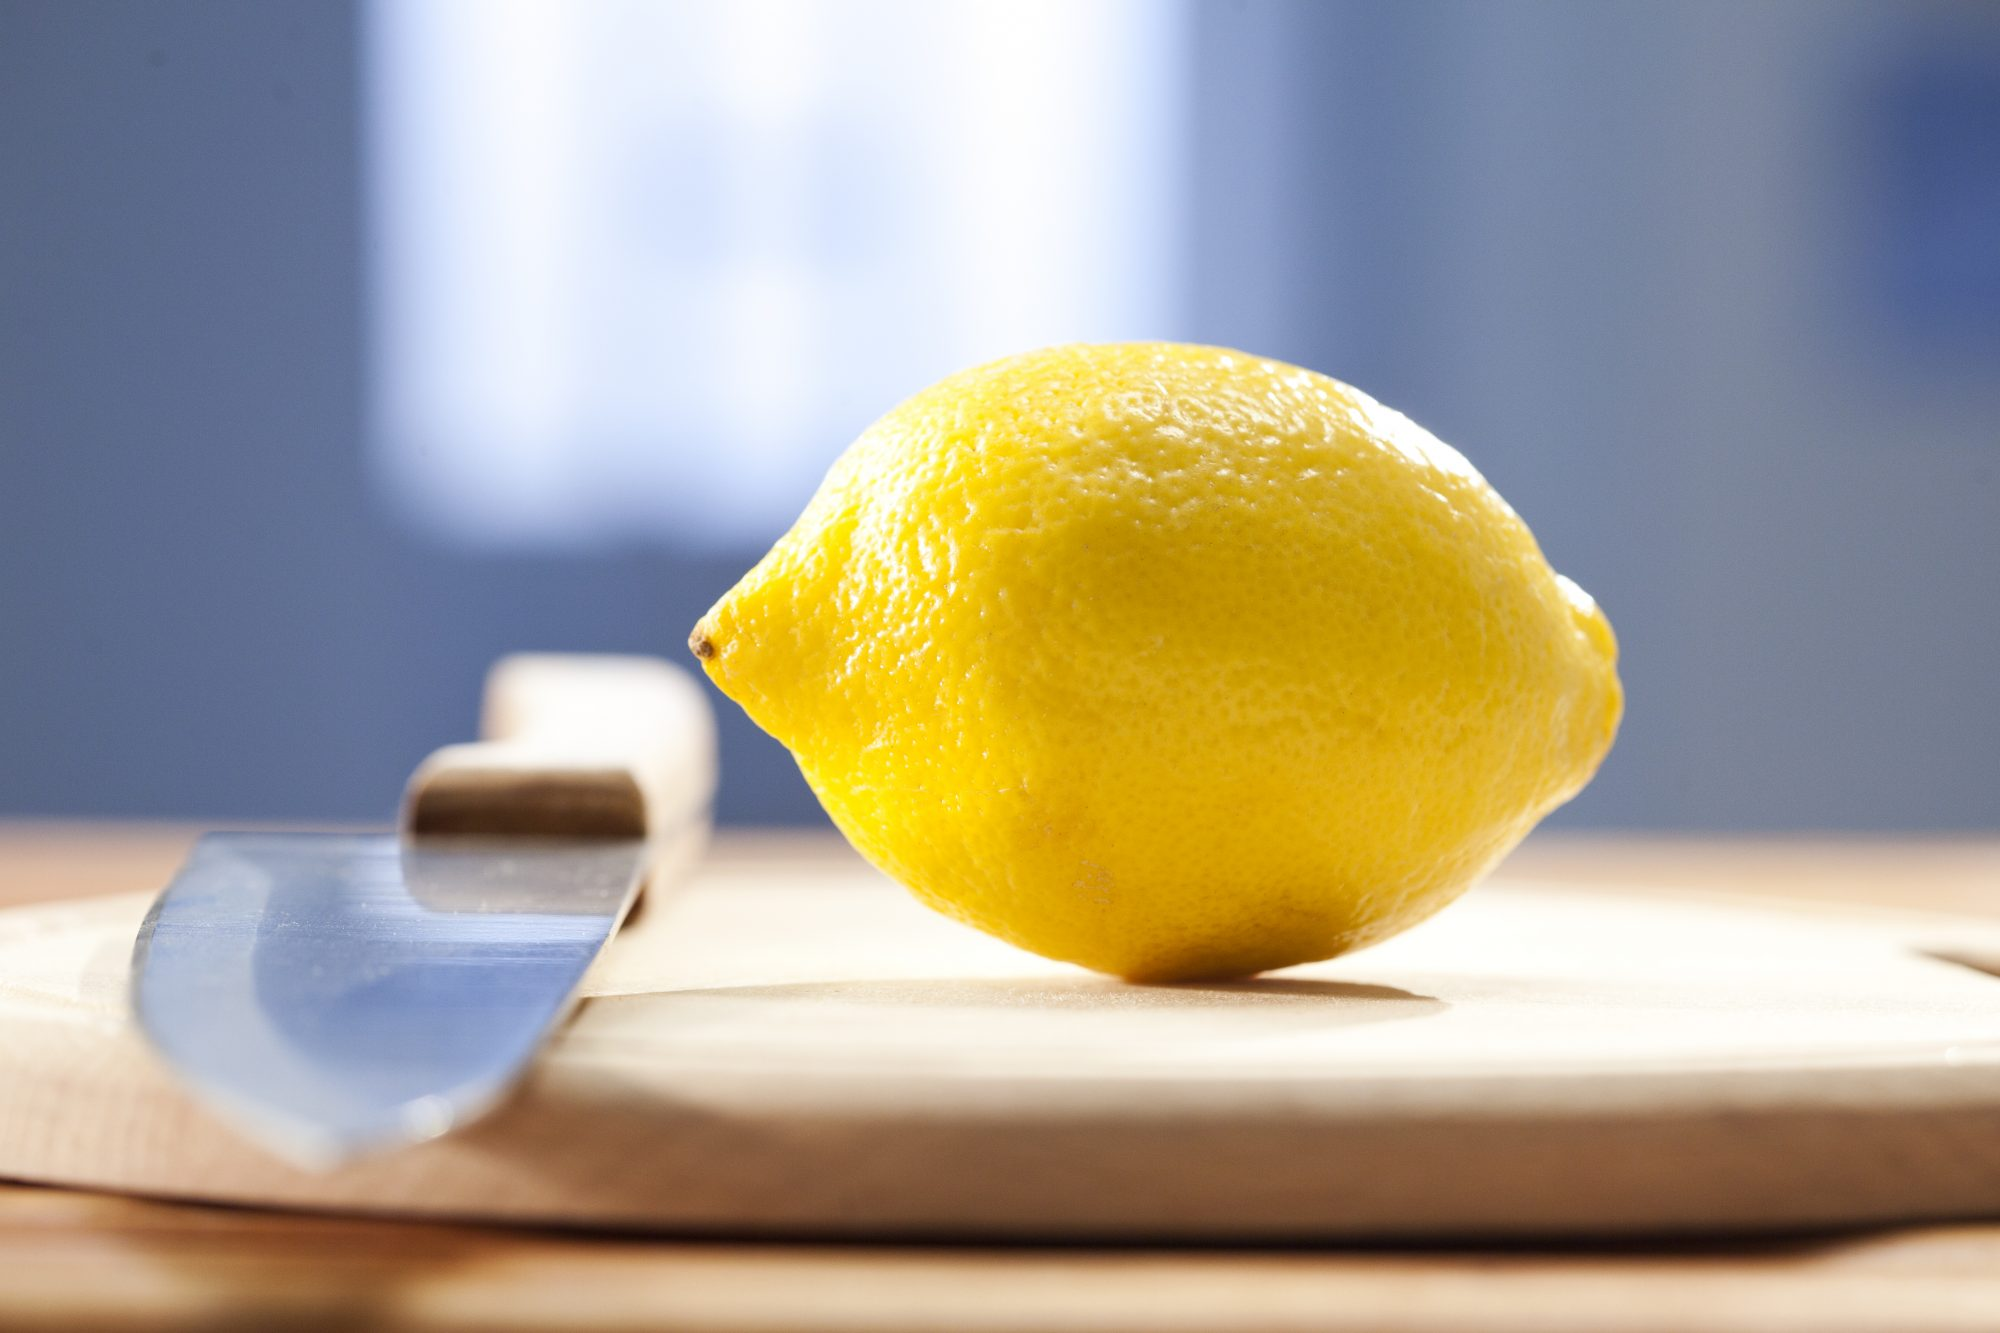 How to Juice a Lemon without Cutting It